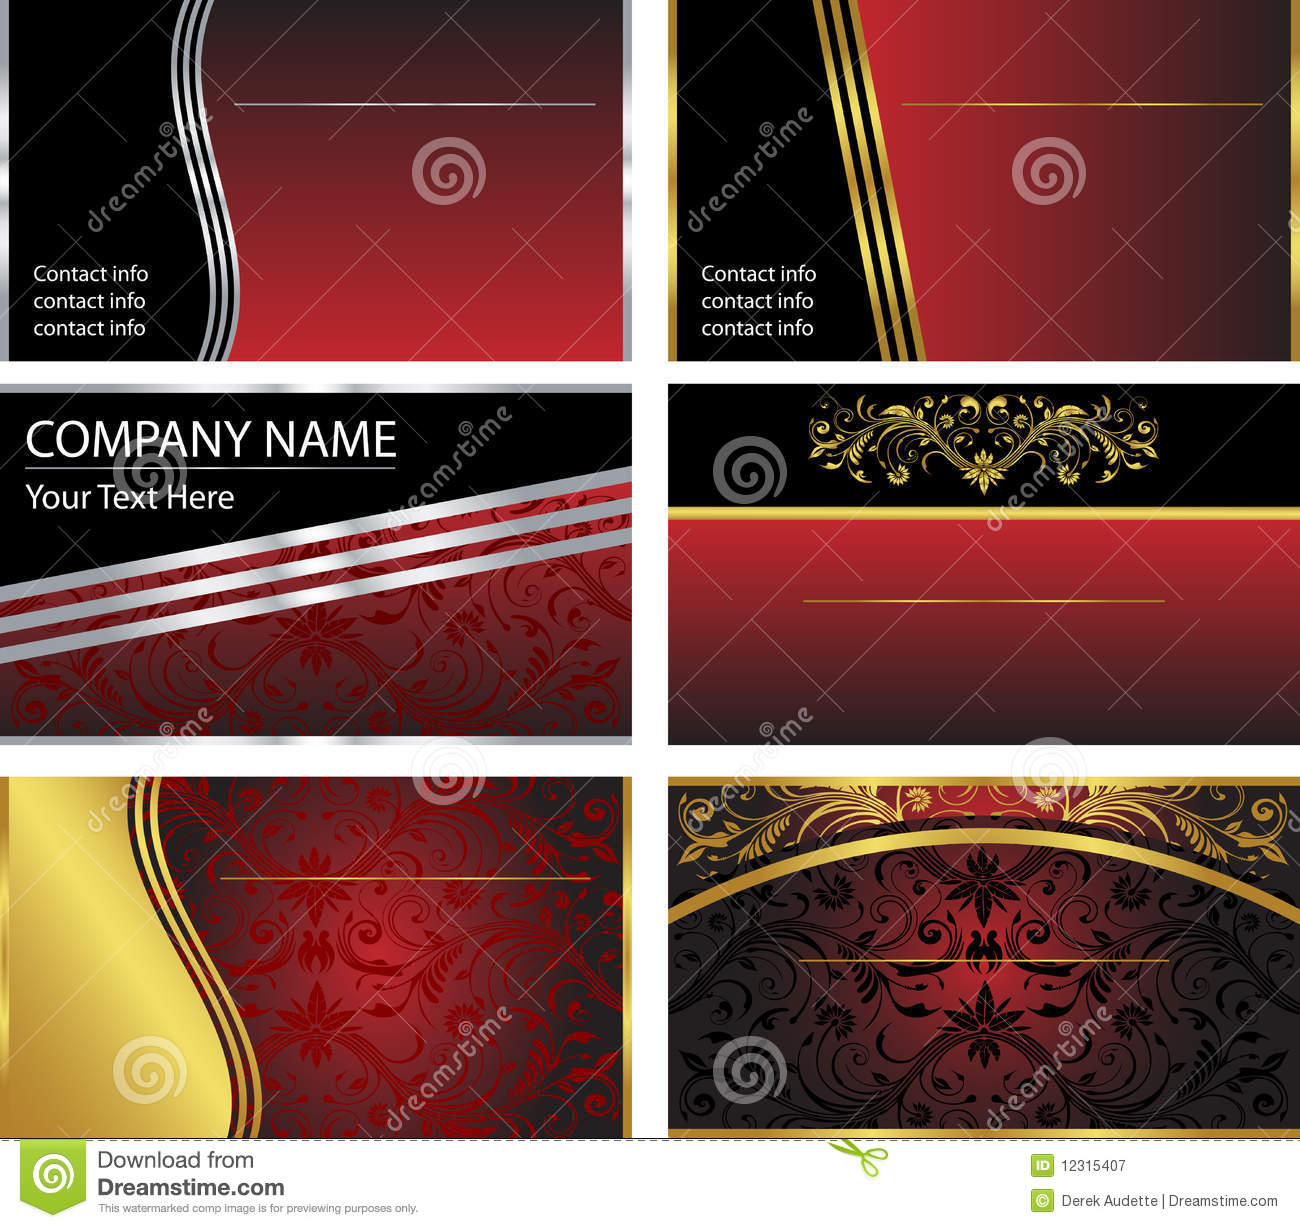 Business Card Psd Templates | Business Card Sample